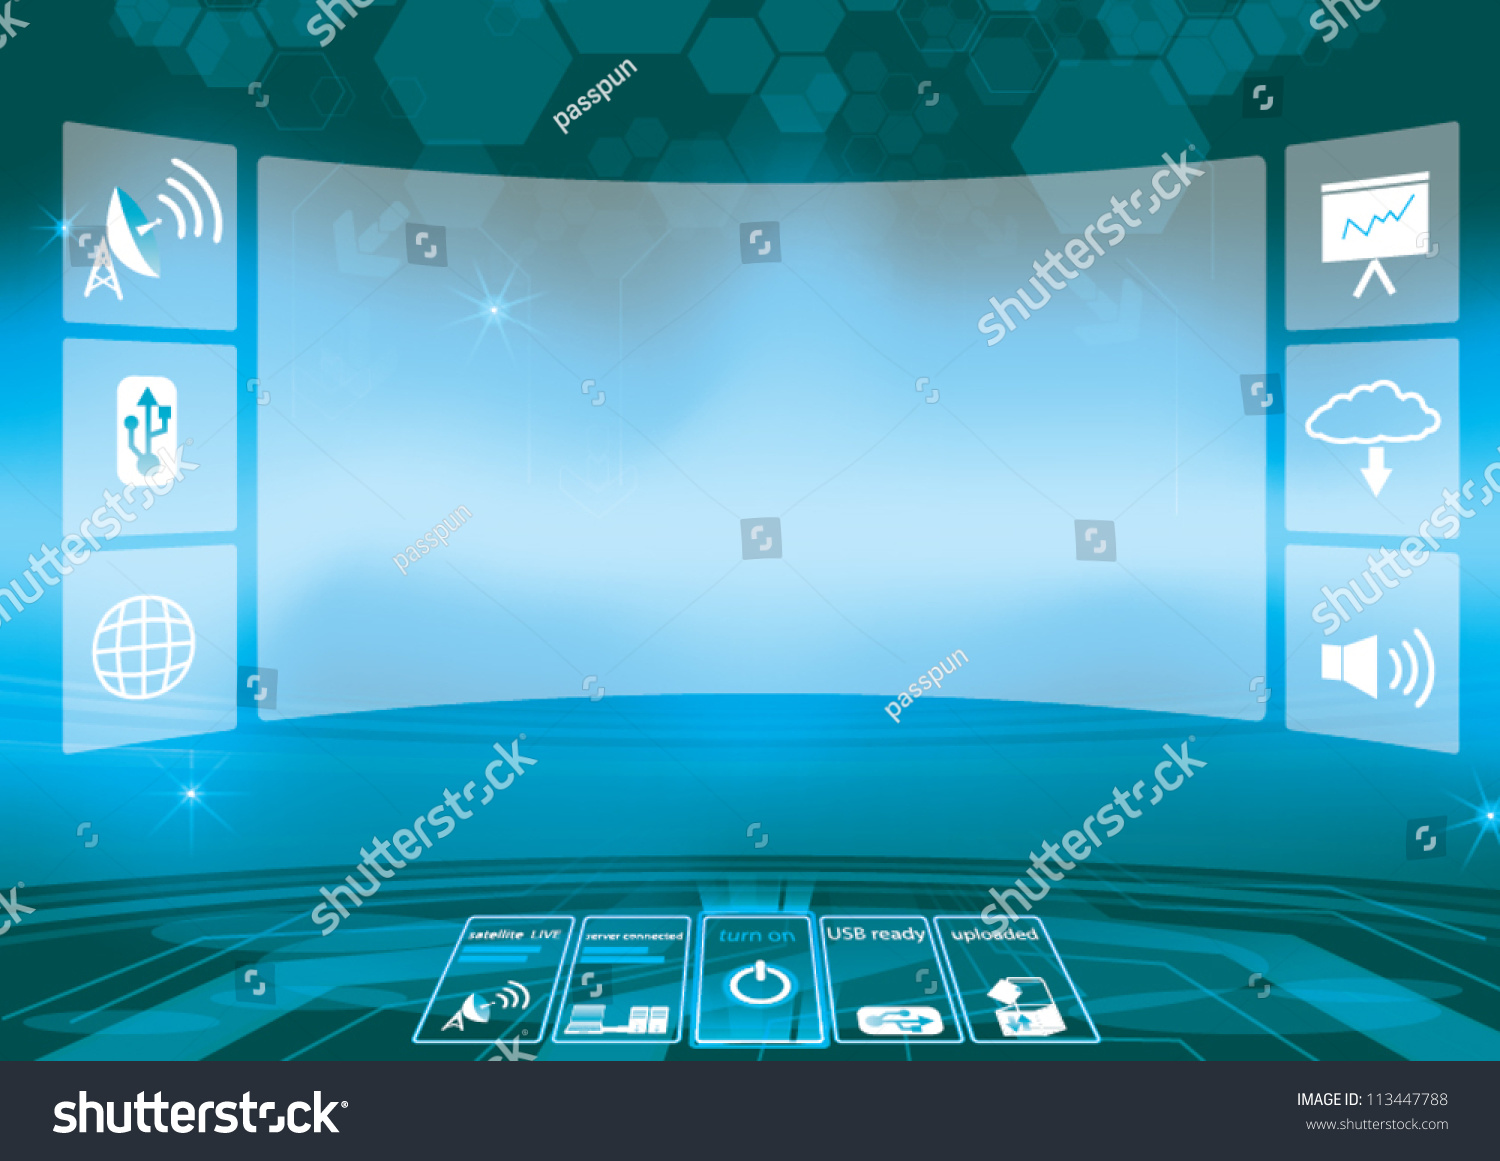 Technology Abstract Background Stock Illustration: Abstract Technology Background Vector Illustration Control